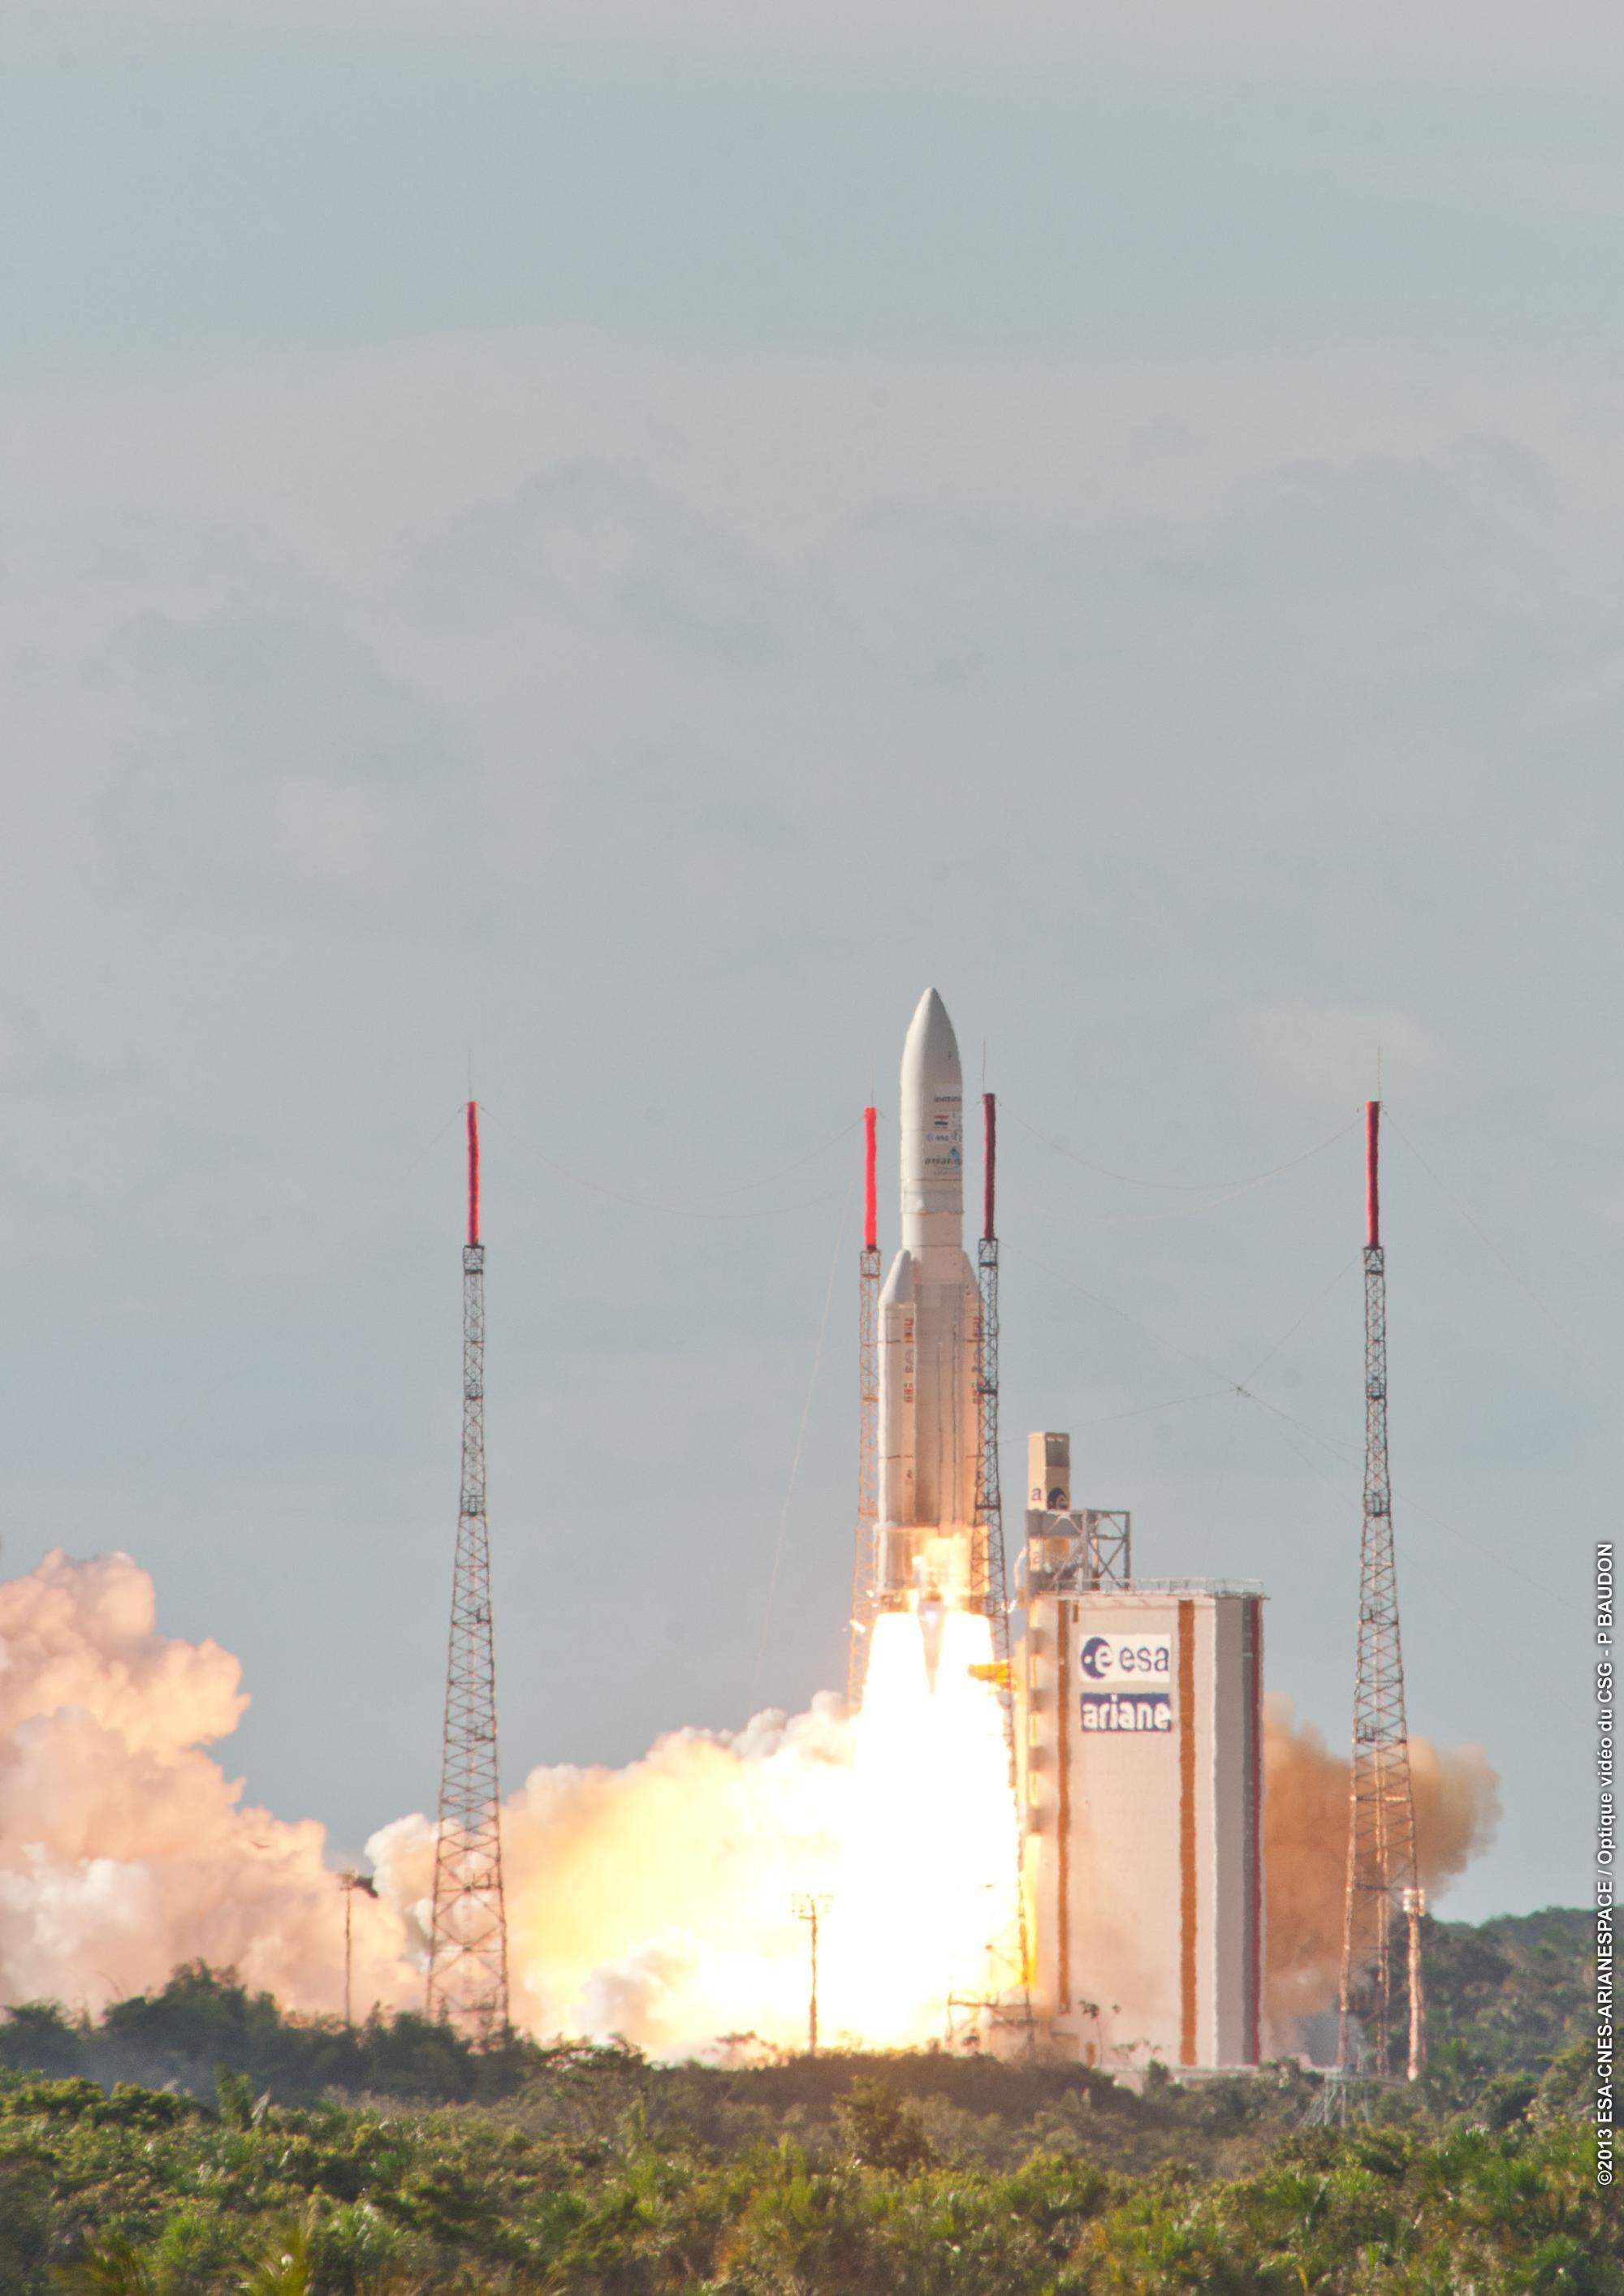 >@Photo credit « Service Optique CSG » « ESA - CNES - ARIANESPACE »